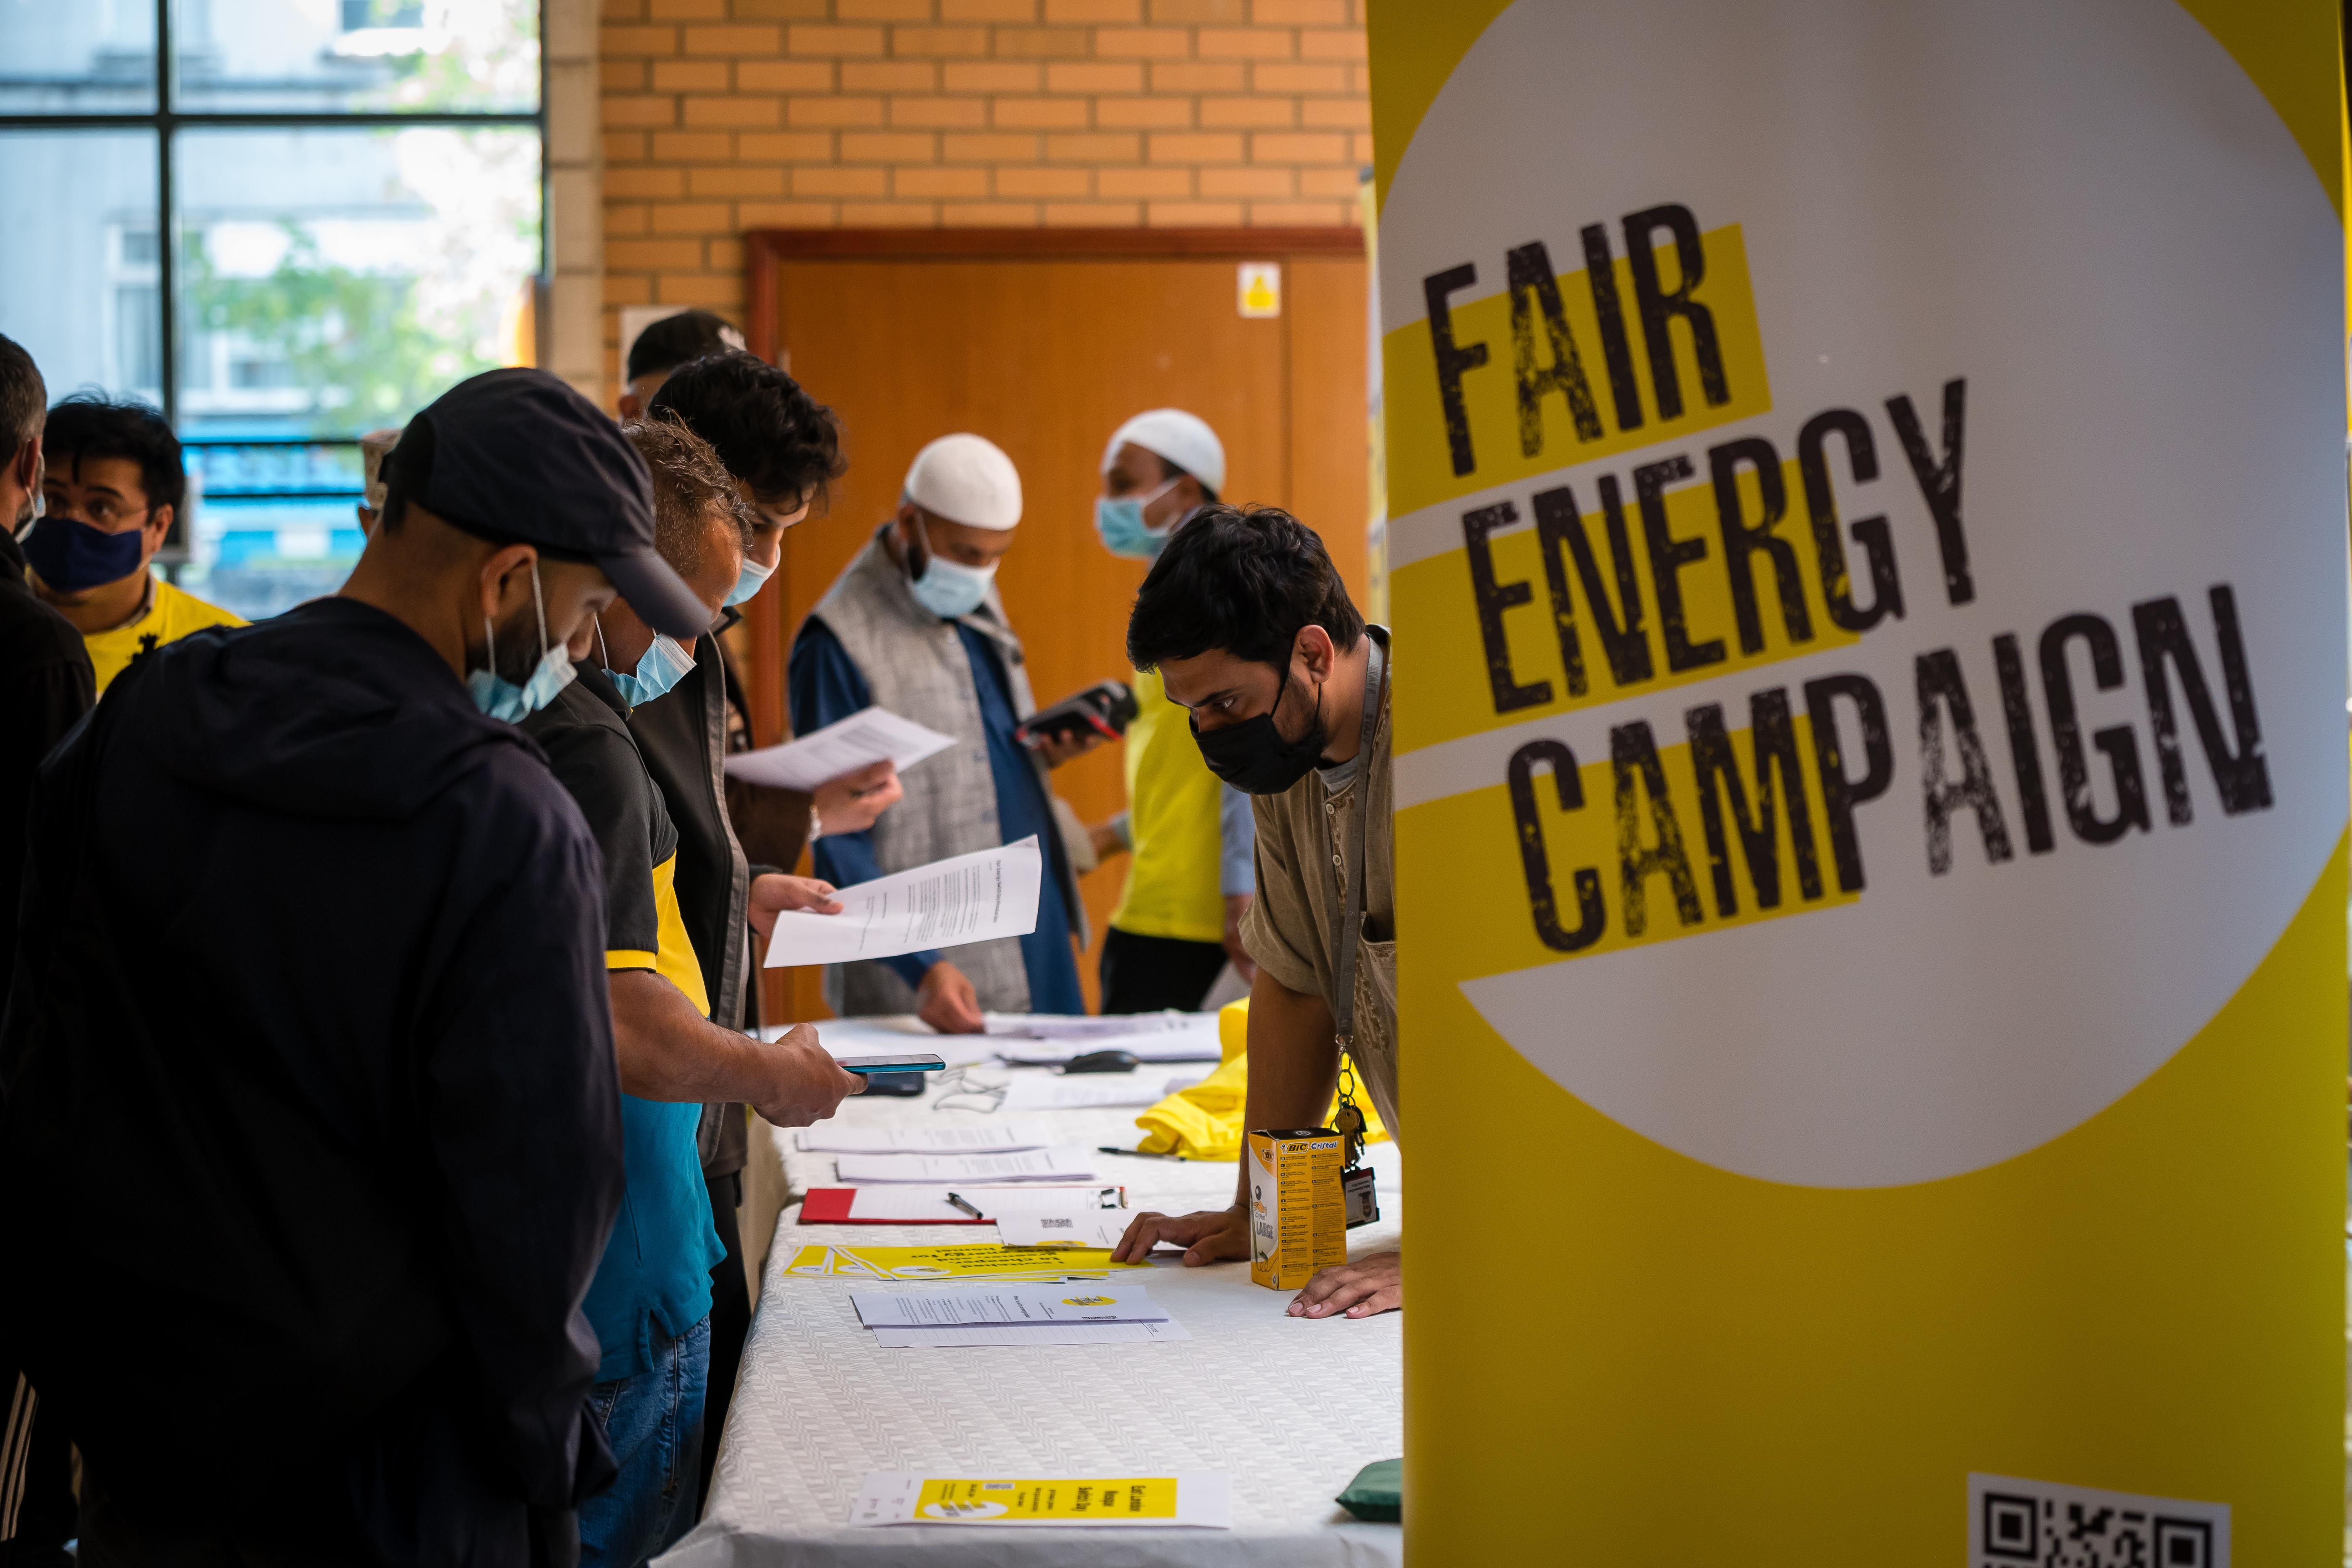 Fair Energy Campaign Launches in East London